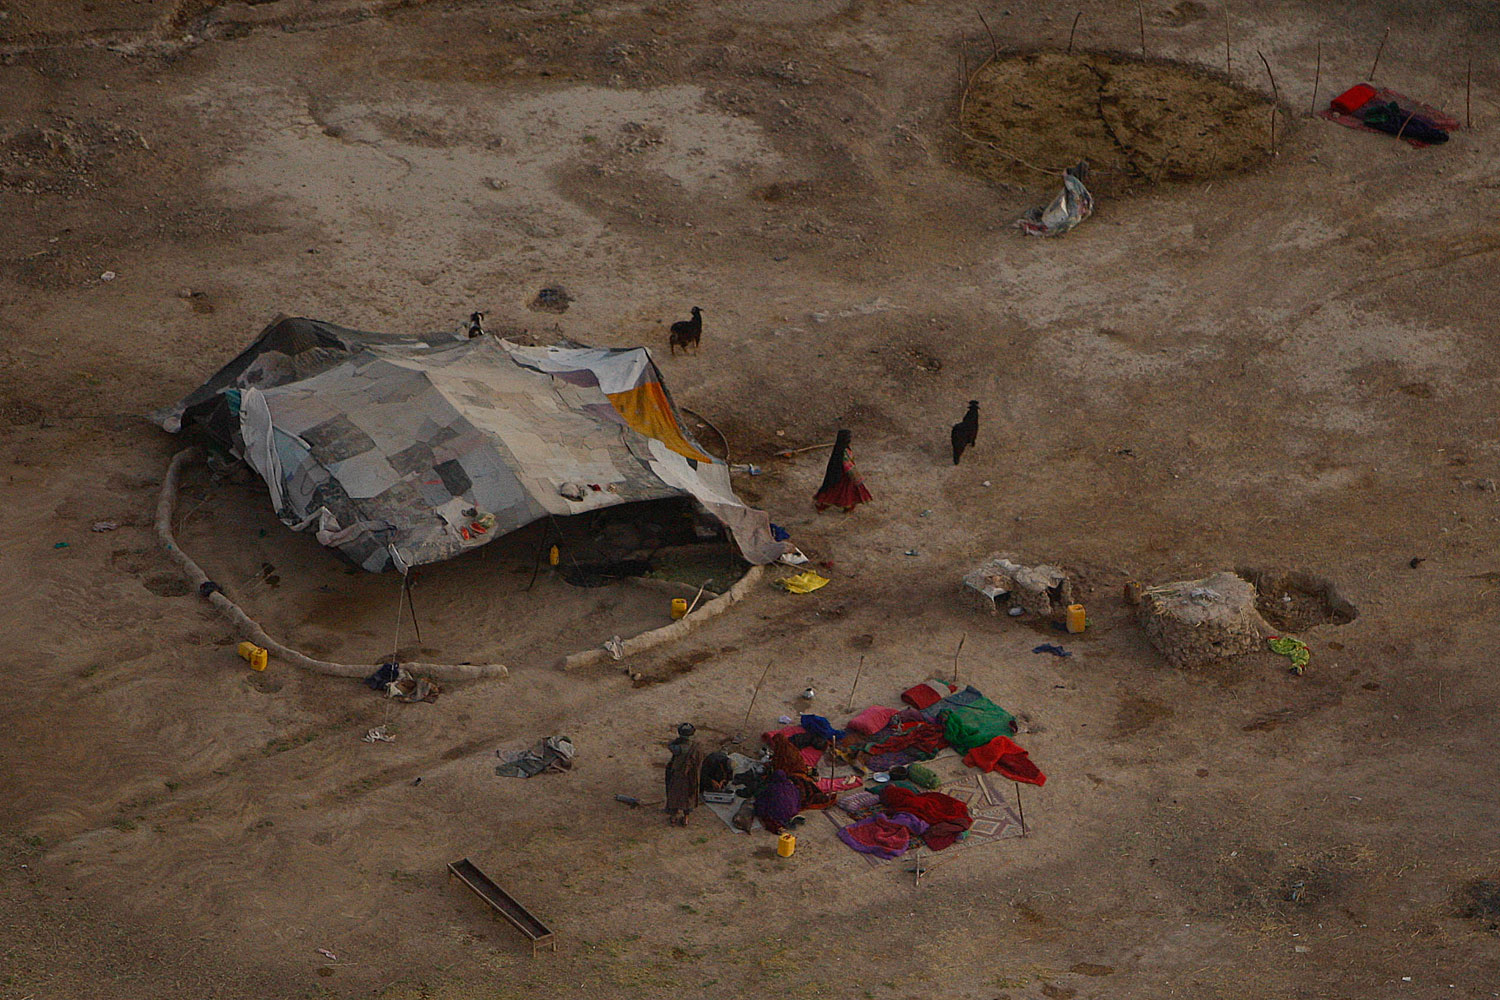 July 29, 2011. Nomads are seen gathering around their tent from a medevac helicopter of the U.S. Army's Task Force Shadow  Dust Off  in Kandahar, Afghanistan.